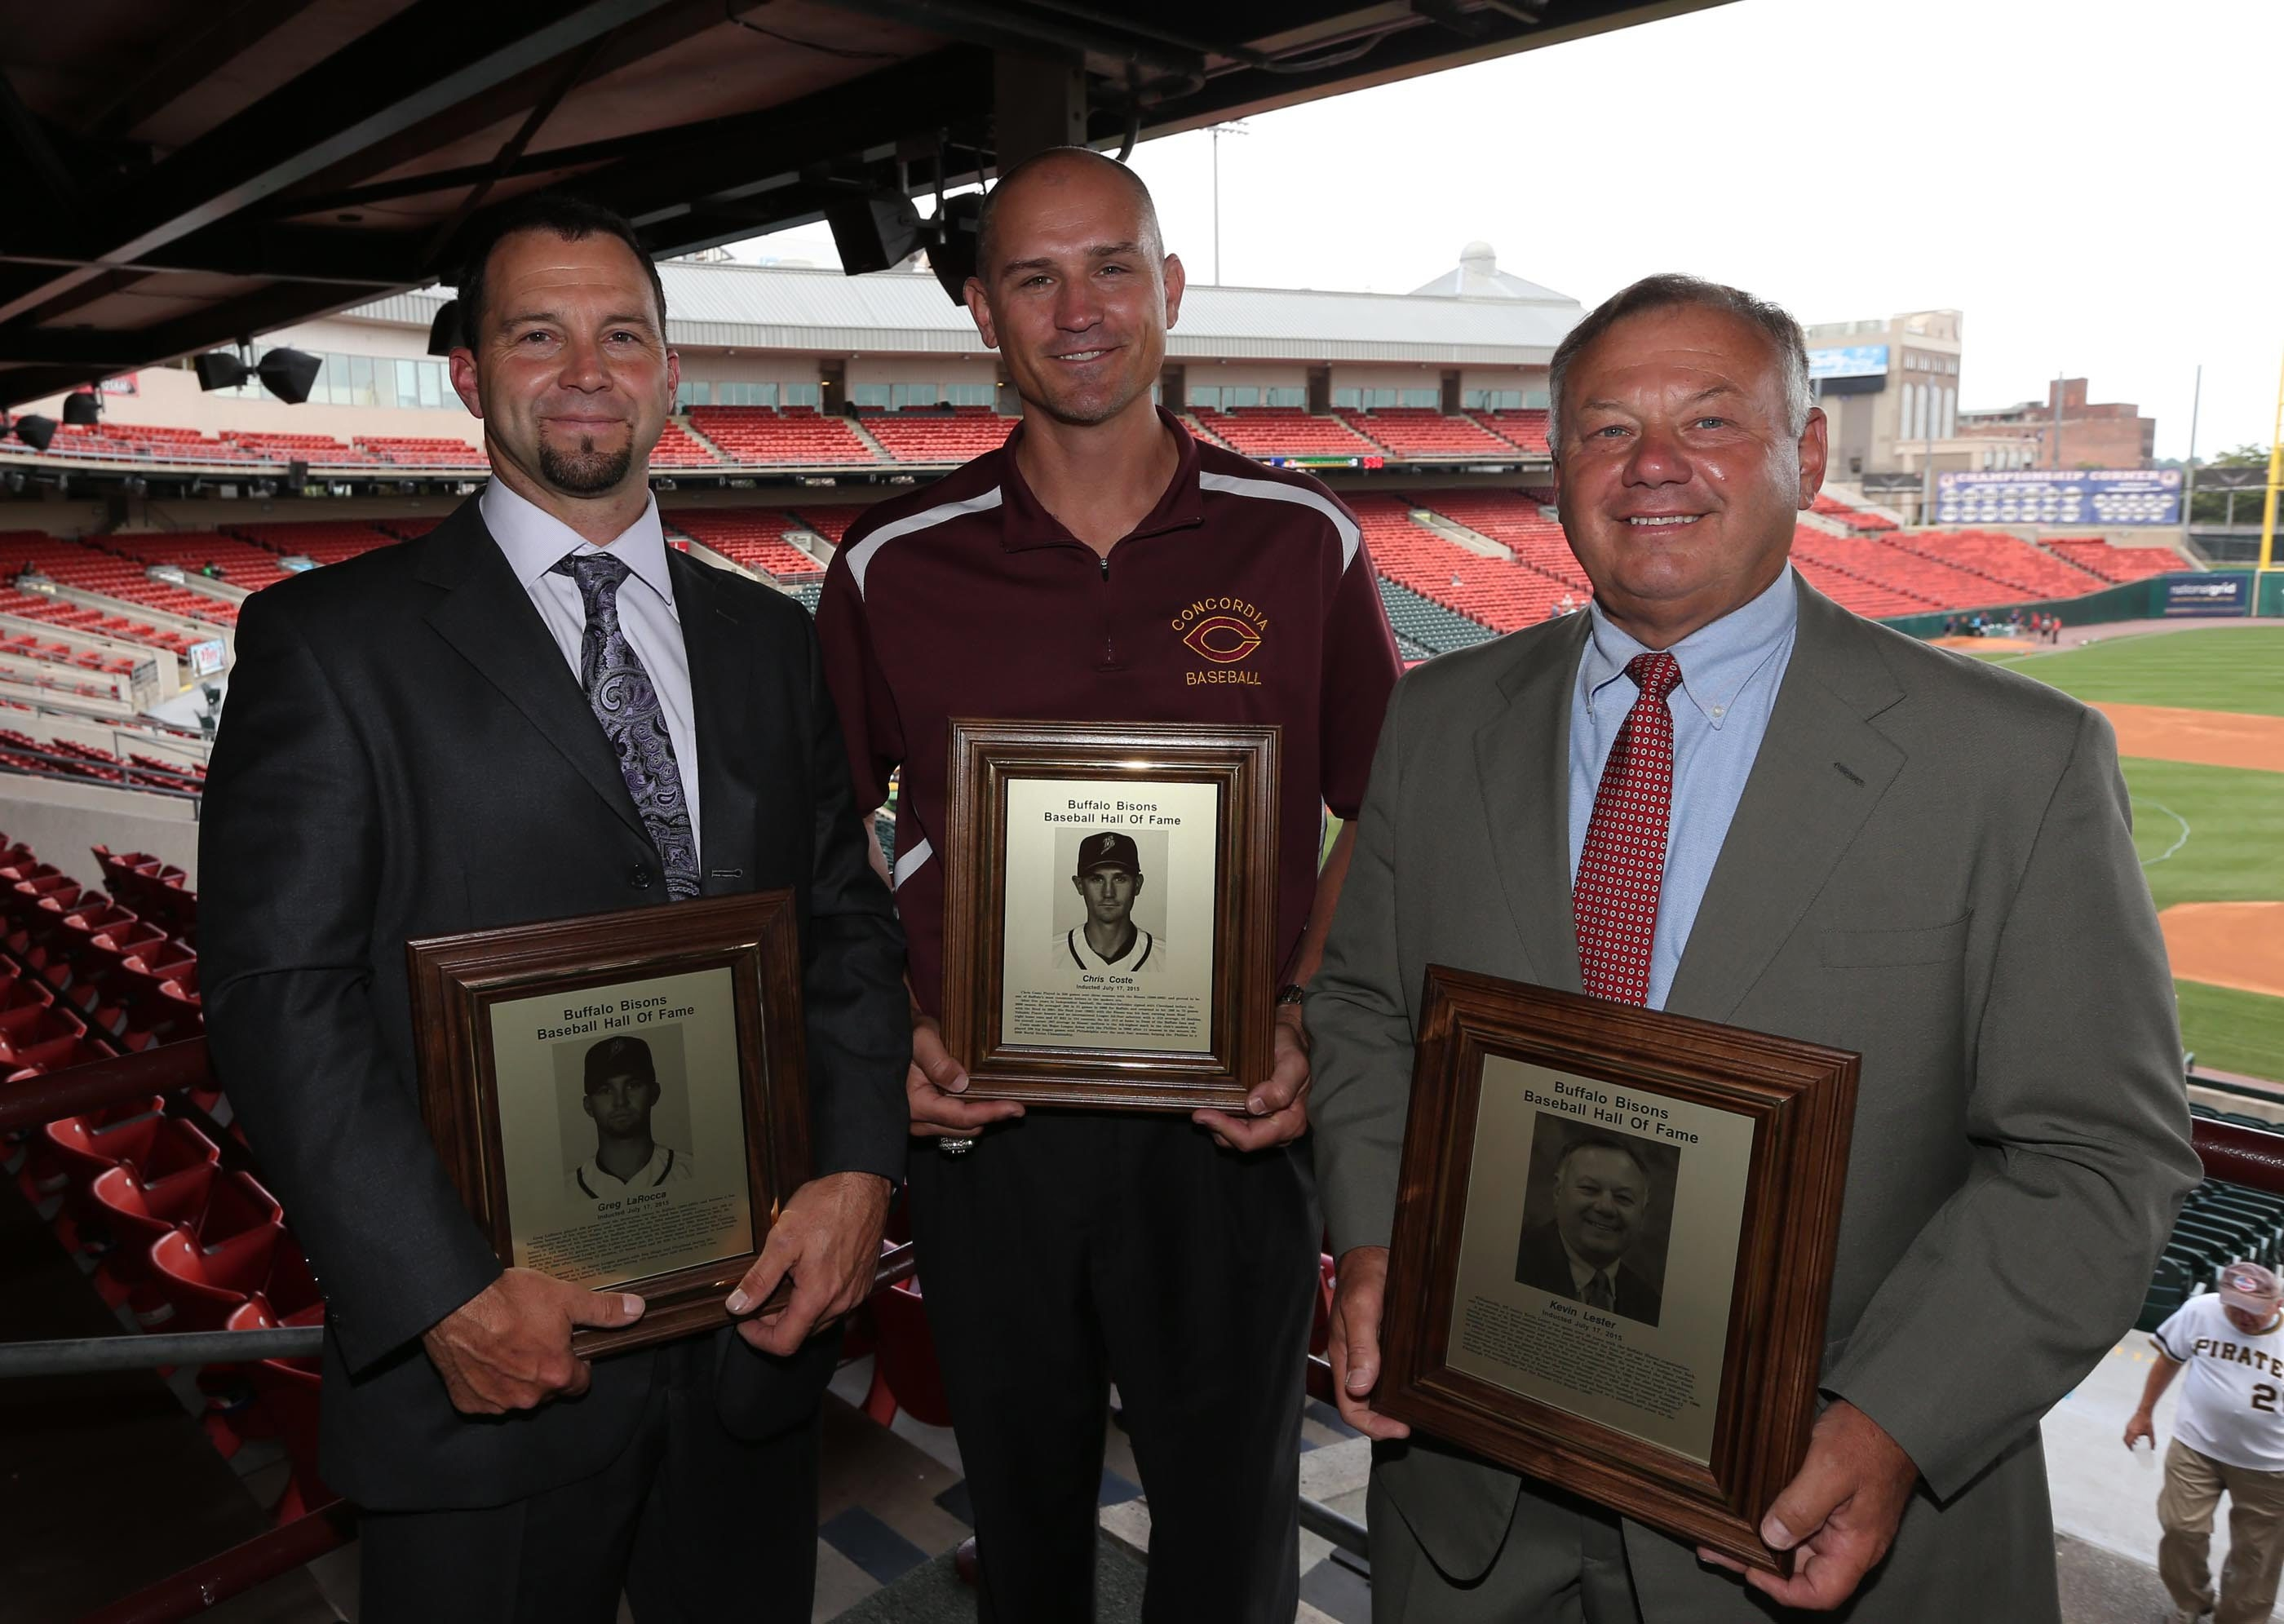 Greg LaRocca, Chris Coste and Kevin Lester were inducted into the Baffalo Baseball Hall of Fame tonight at Coca-Cola Field in Buffalo,NY on Friday, July 17, 2015.  (James P. McCoy/ Buffalo News)